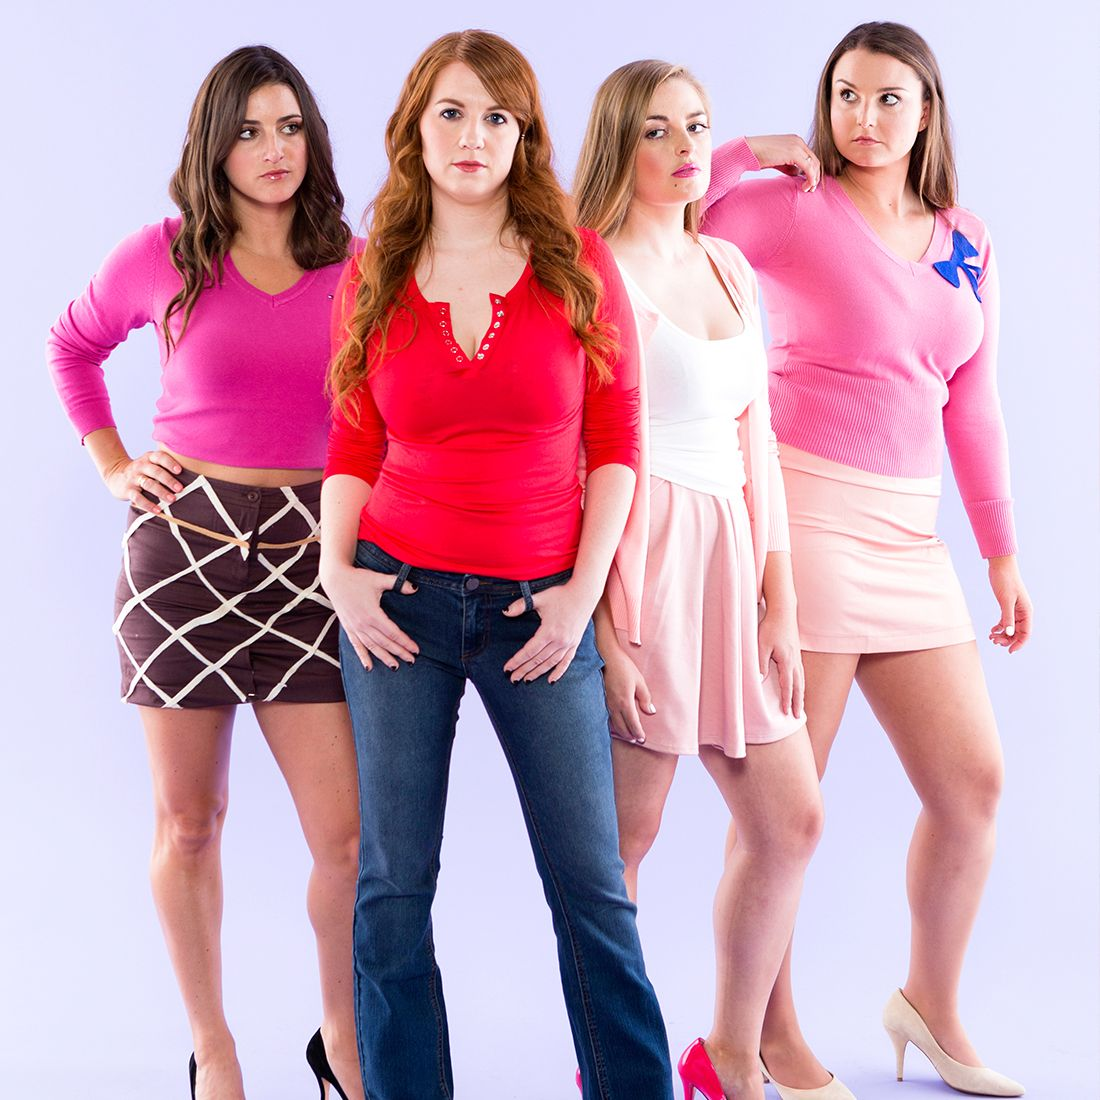 Bring the Plastics to life with this DIY Mean Girls group costume for Halloween.